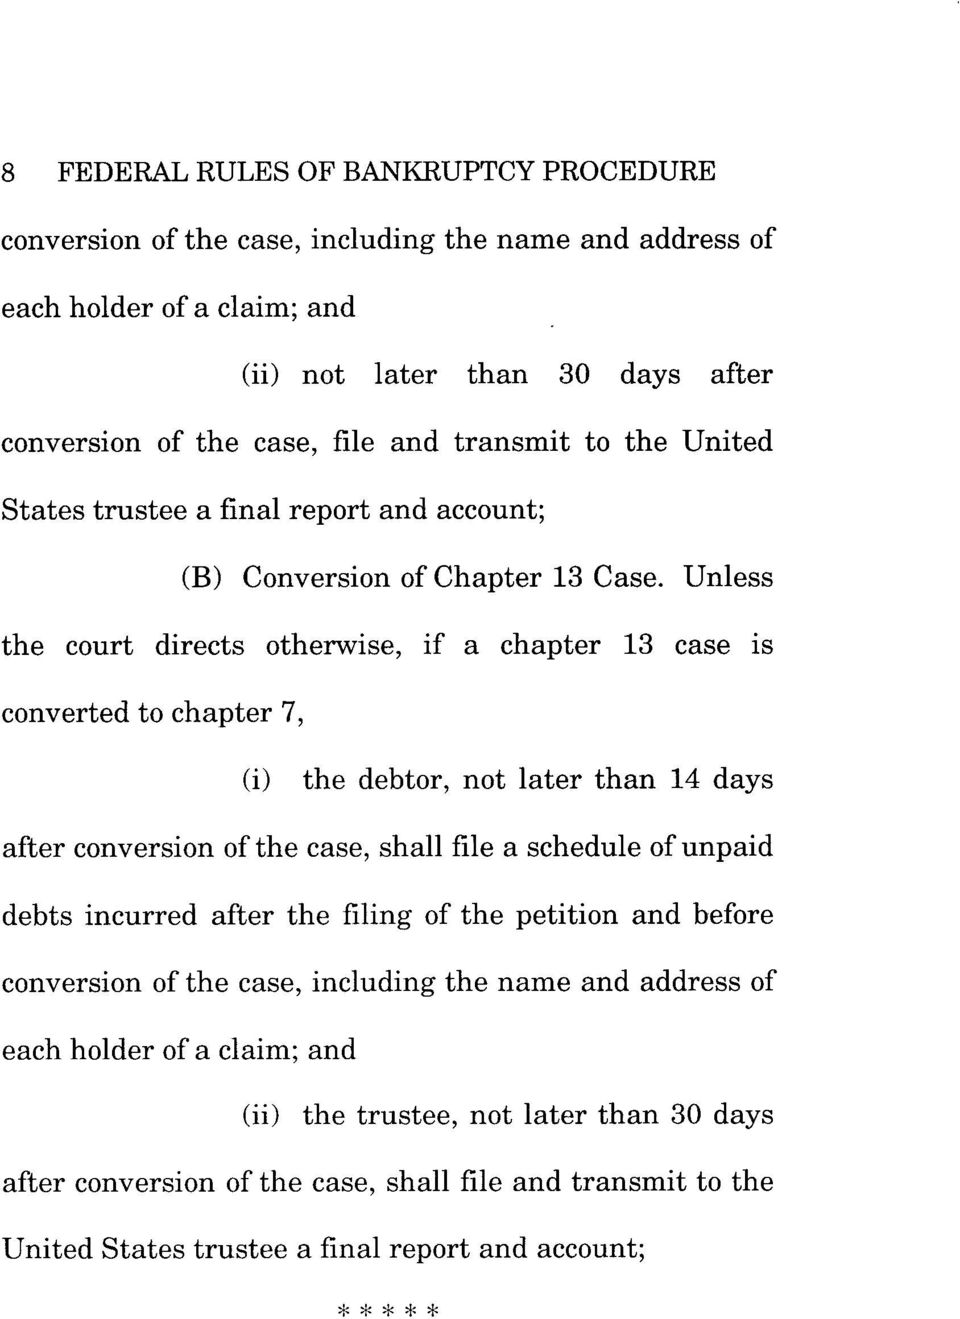 Unless the court directs otherwise, if a chapter 13 case is converted to chapter 7, (i) the debtor, not later than 14 days after conversion of the case, shall file a schedule of unpaid debts